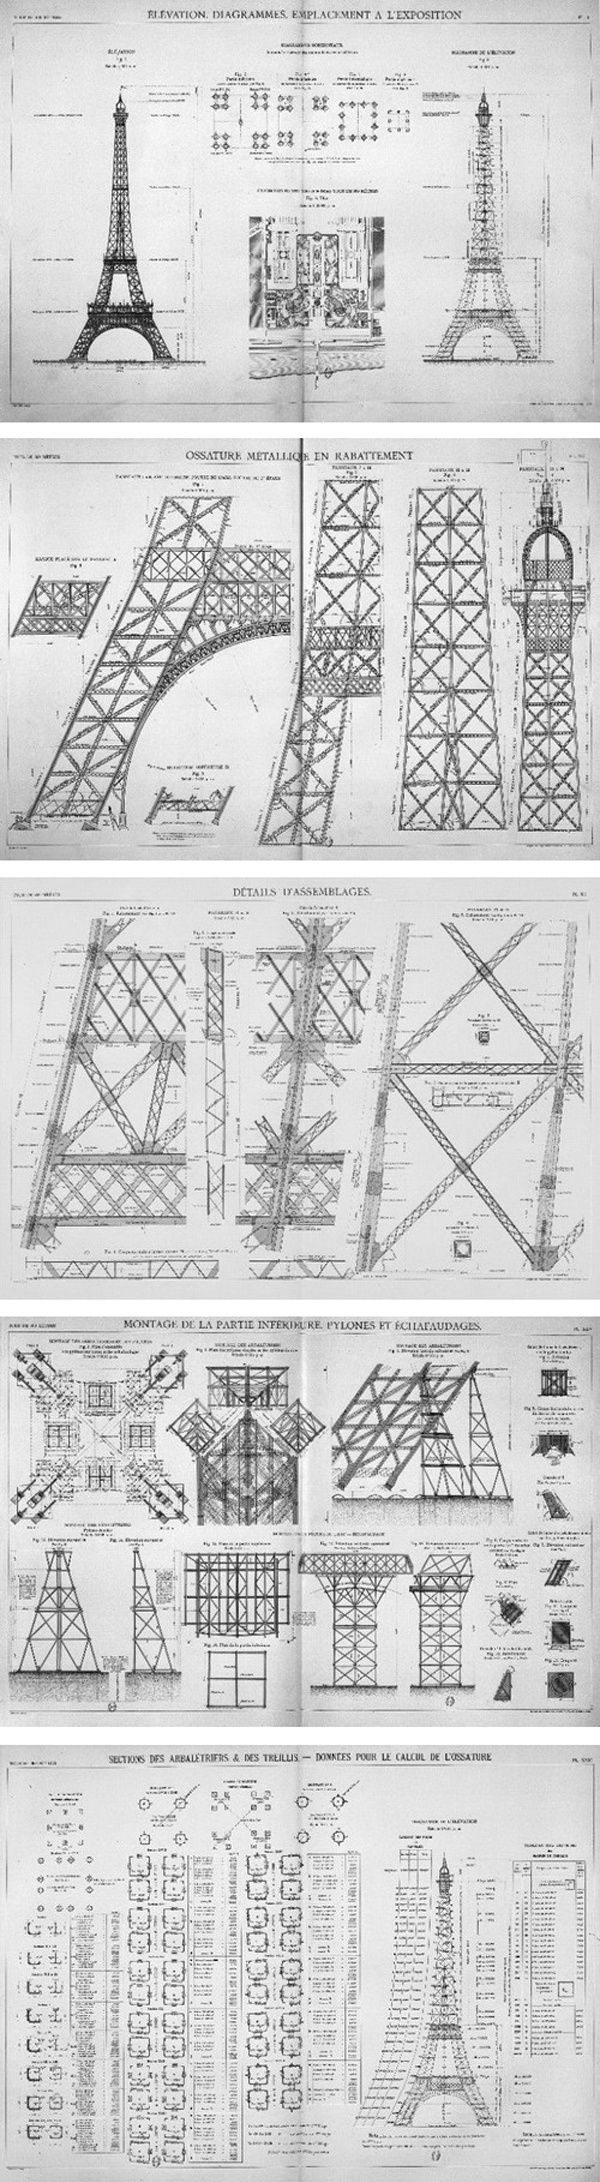 Blueprints For The Eiffel Tower: Named After The Engineer Gustave Eiffel,  Whose Company Designed